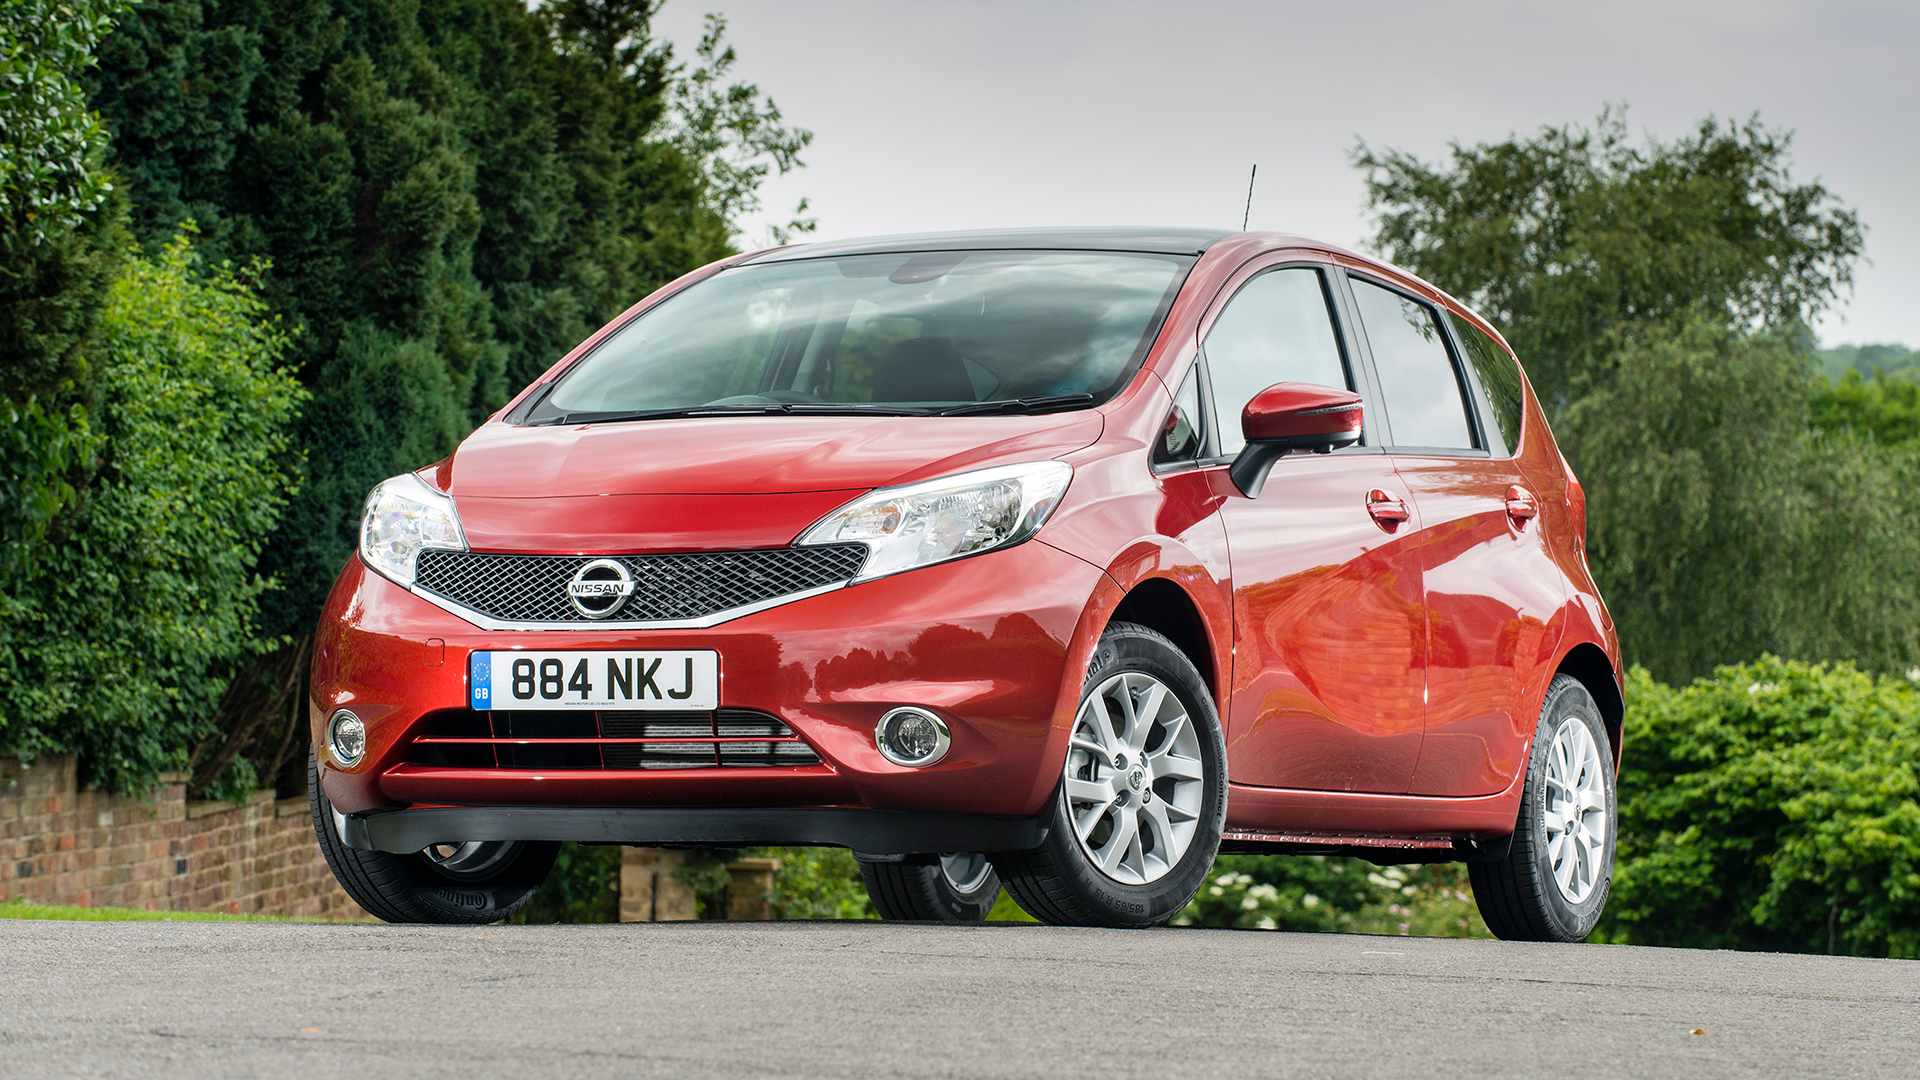 find used nissan note cars for sale on auto trader uk. Black Bedroom Furniture Sets. Home Design Ideas